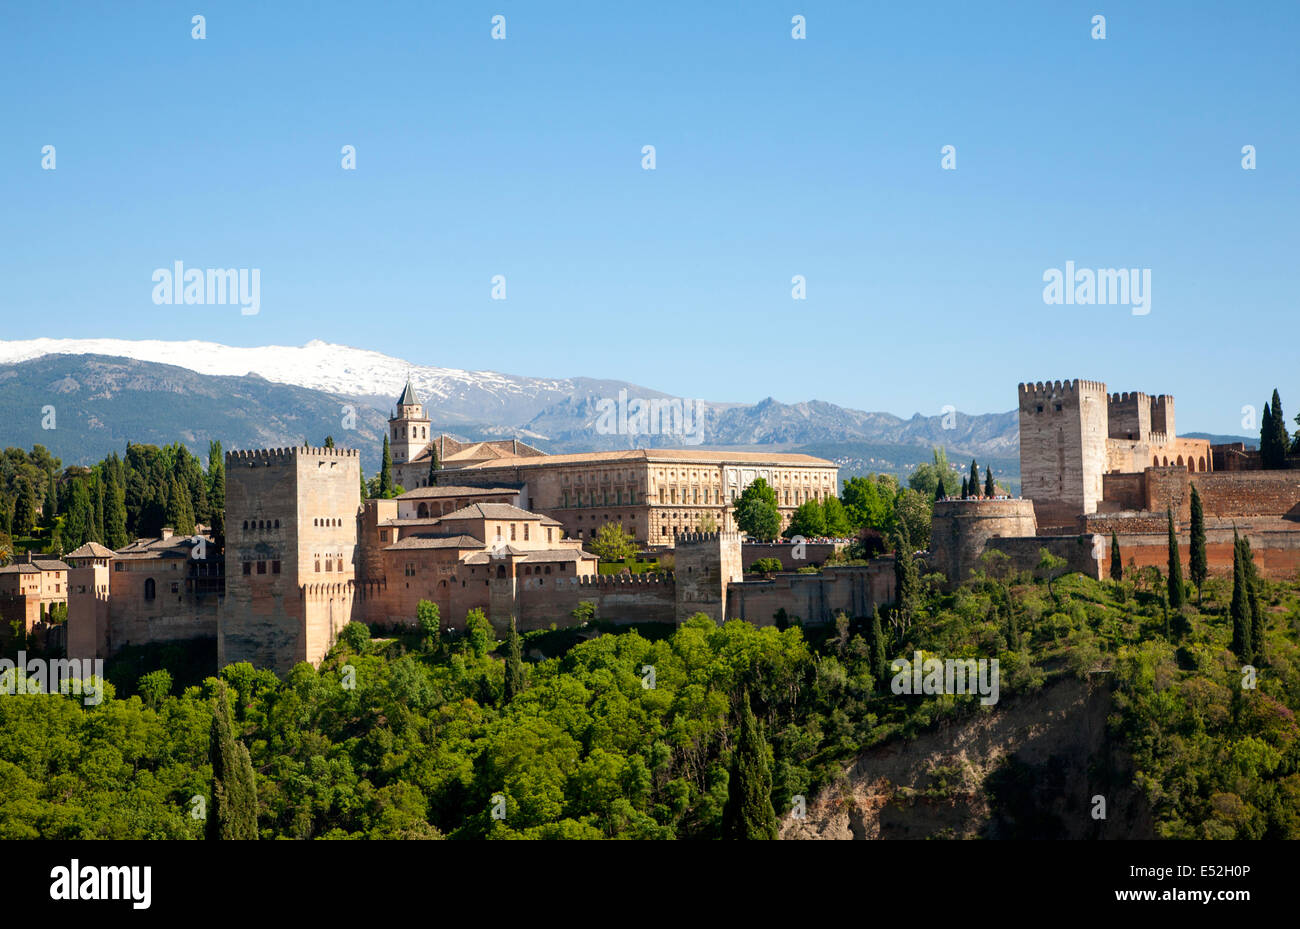 Snow capped peaks of the Sierra Nevada mountains and the Alhambra, Granada, Spain - Stock Image